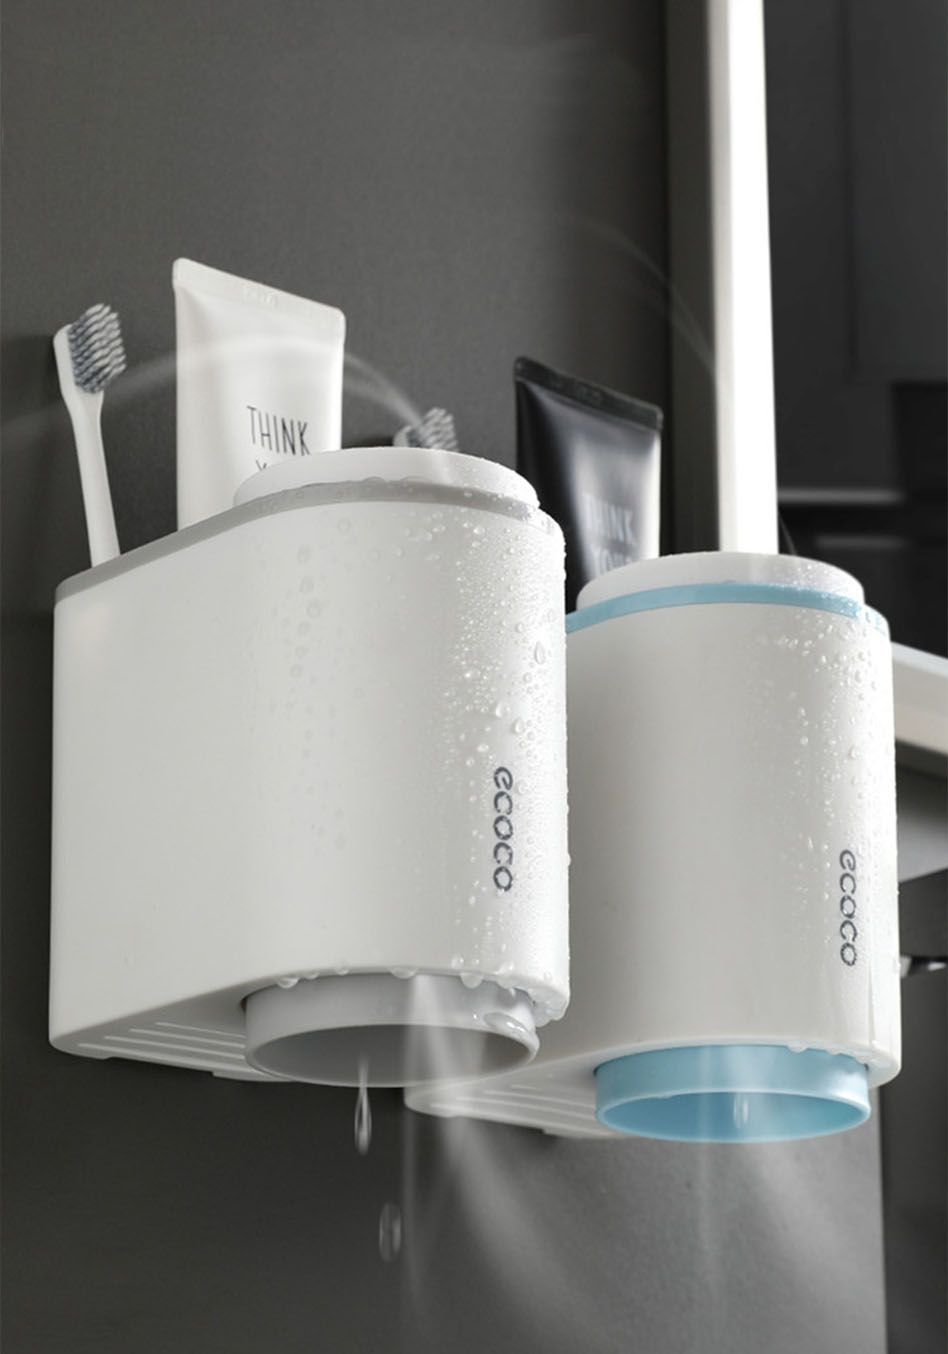 Grey Toothbrush Holder, Blue Toothbrush Holder Ventilation Design